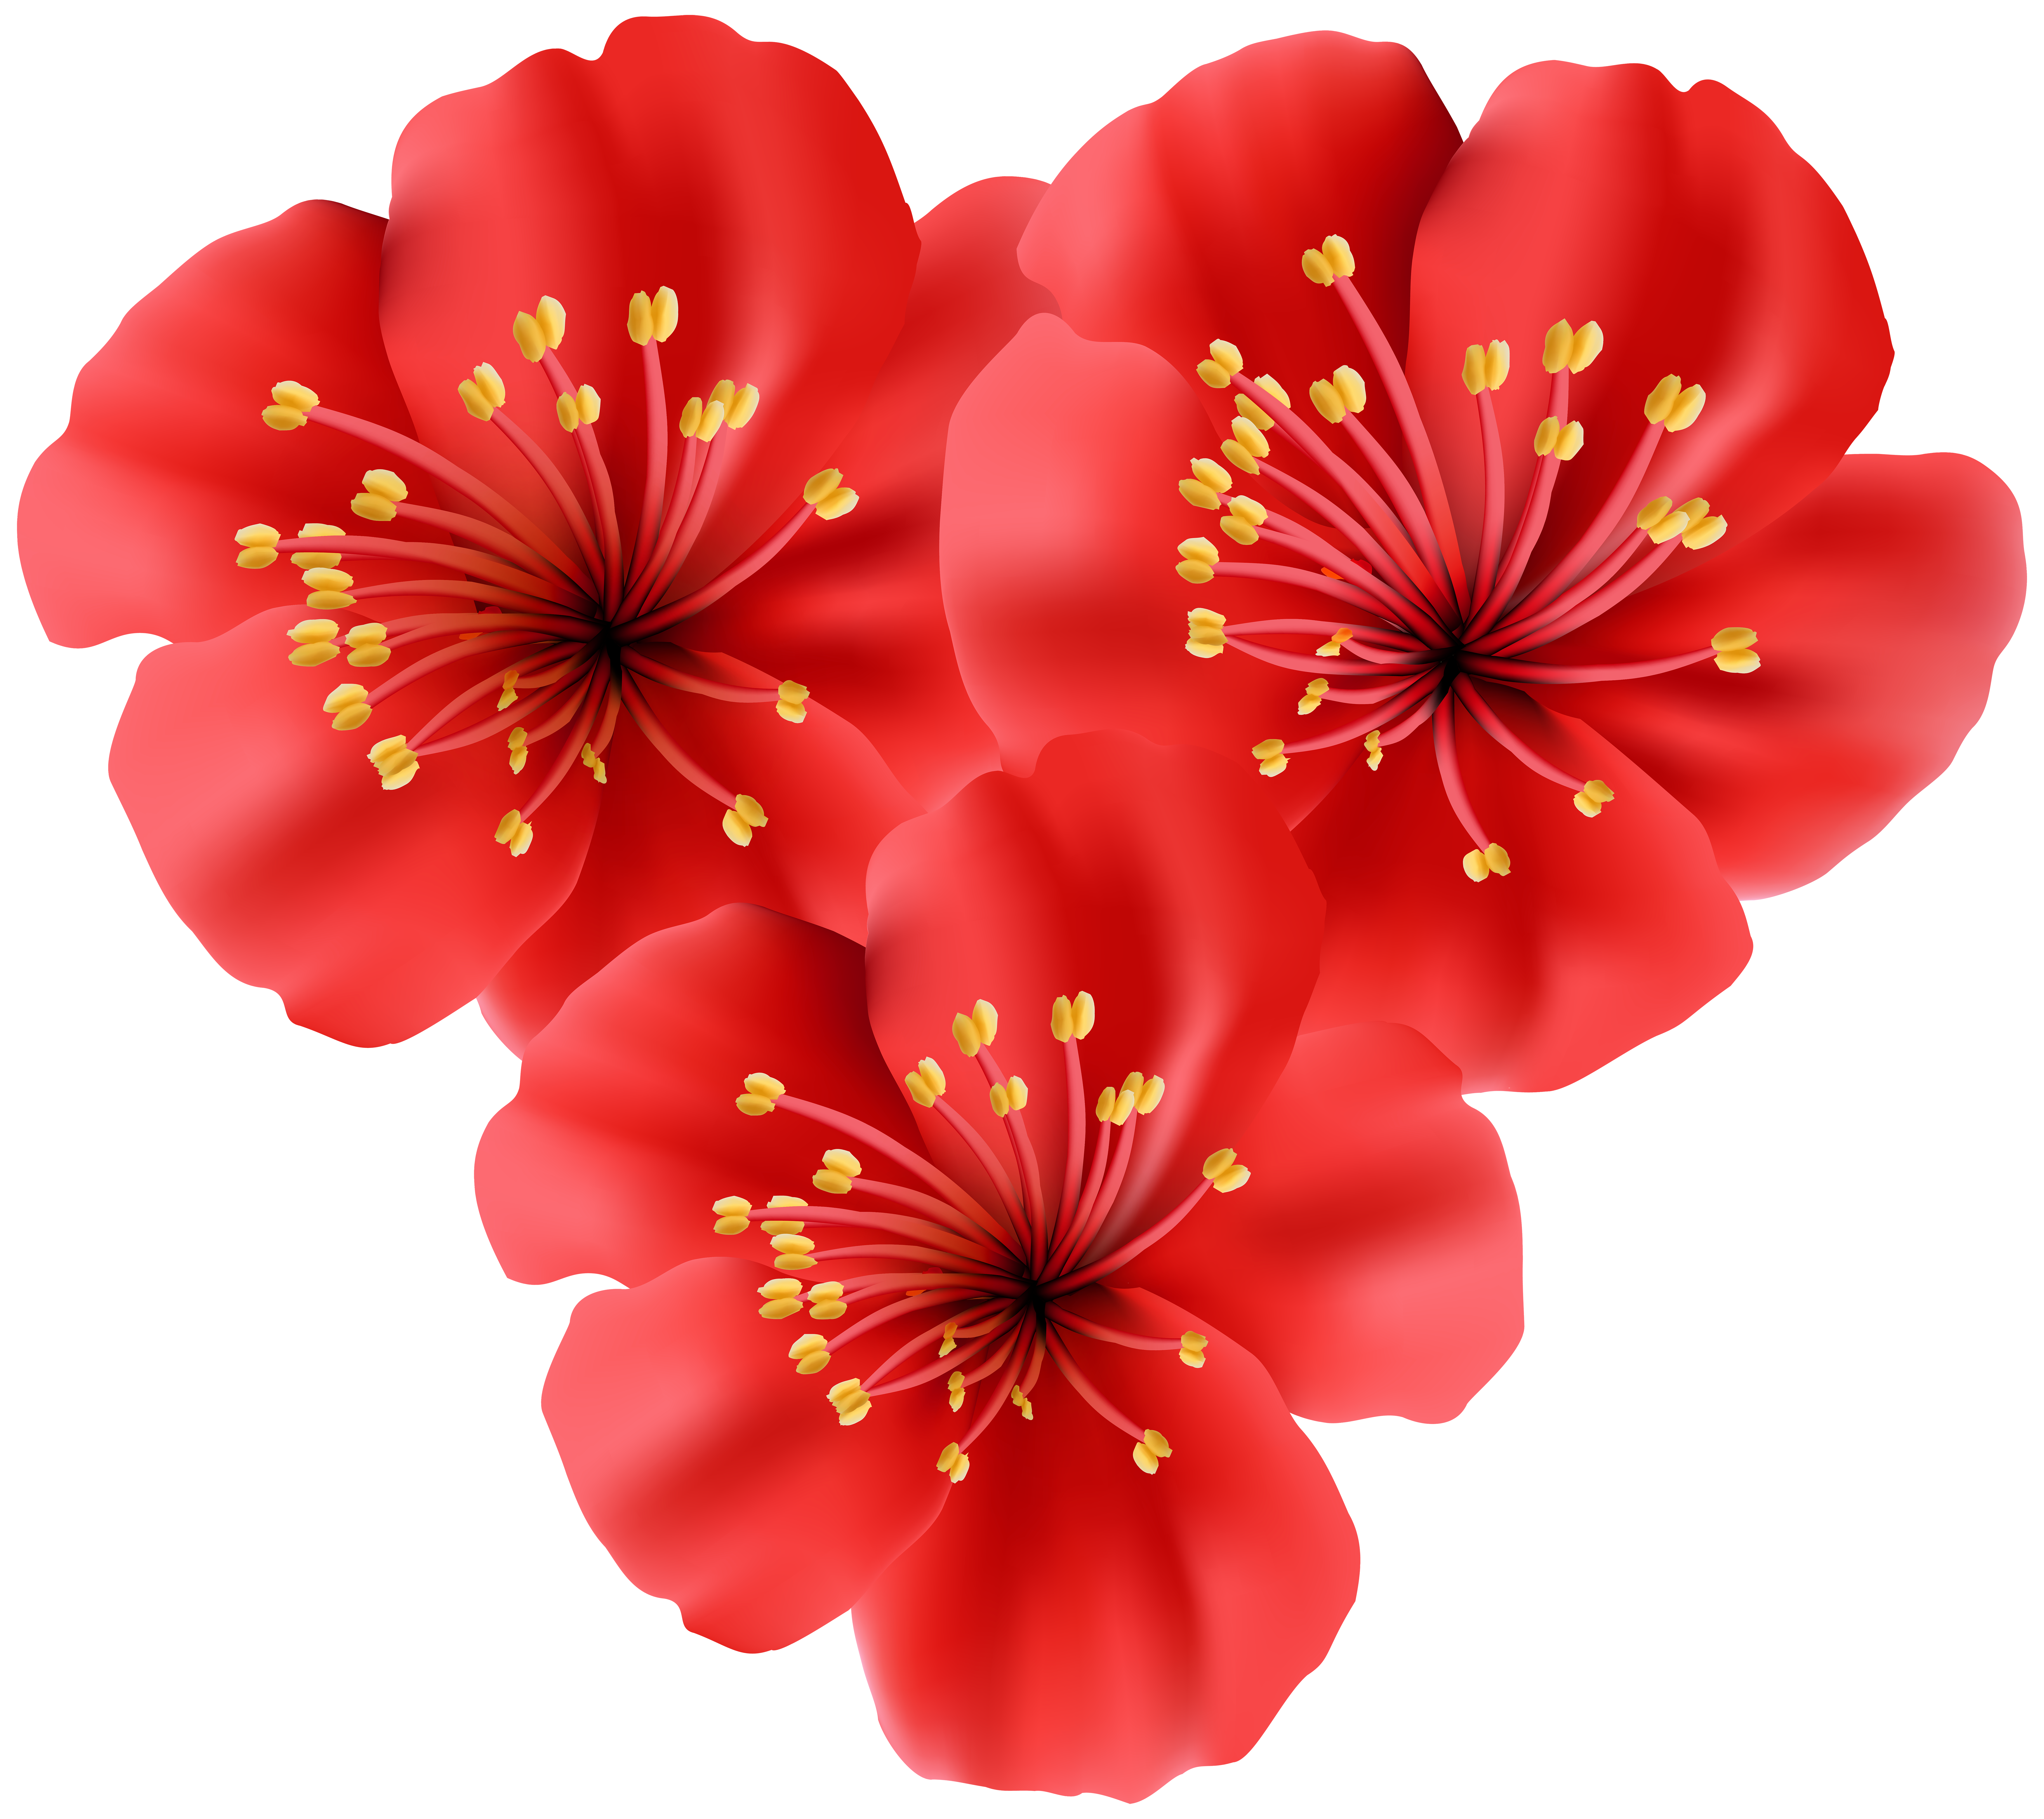 Tropical flowers png. Heart clip art image